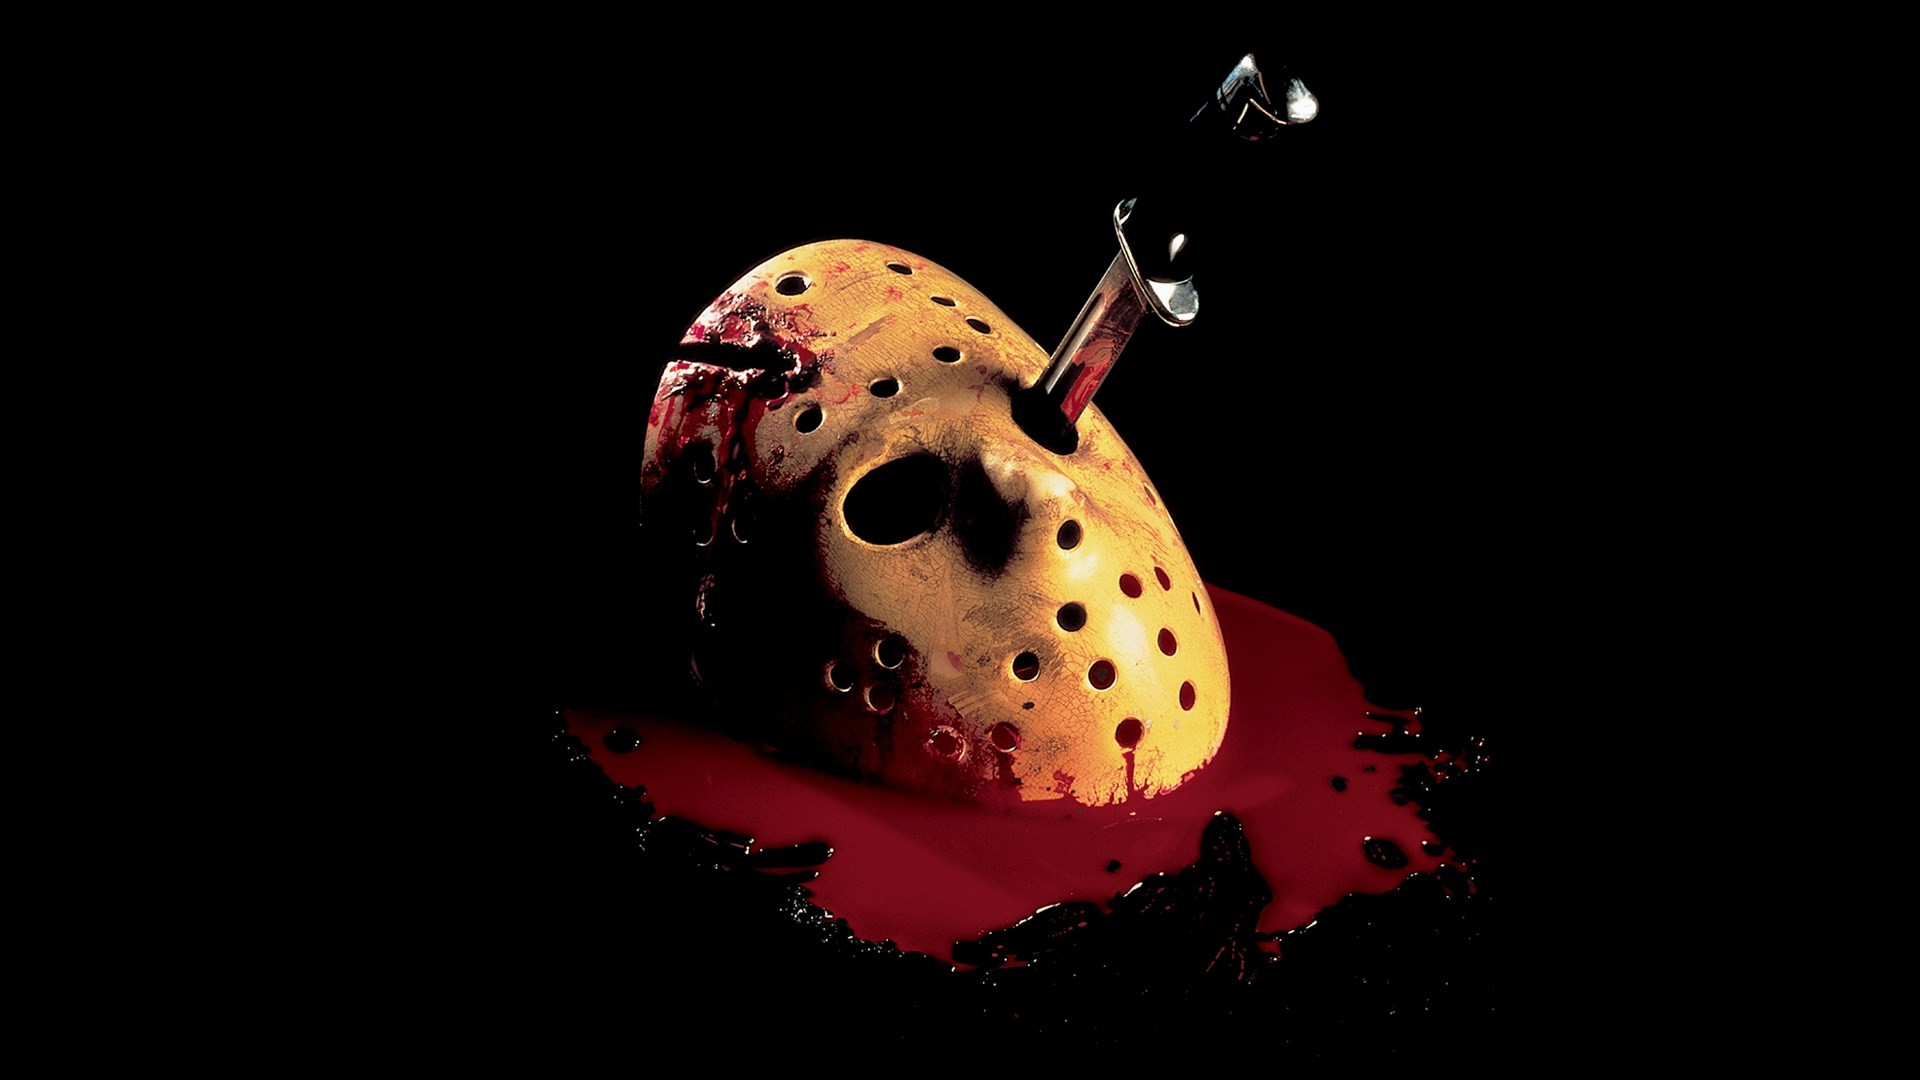 Friday The 13th The Game Wallpaper: Jason Wallpapers Friday 13Th (82+ Images